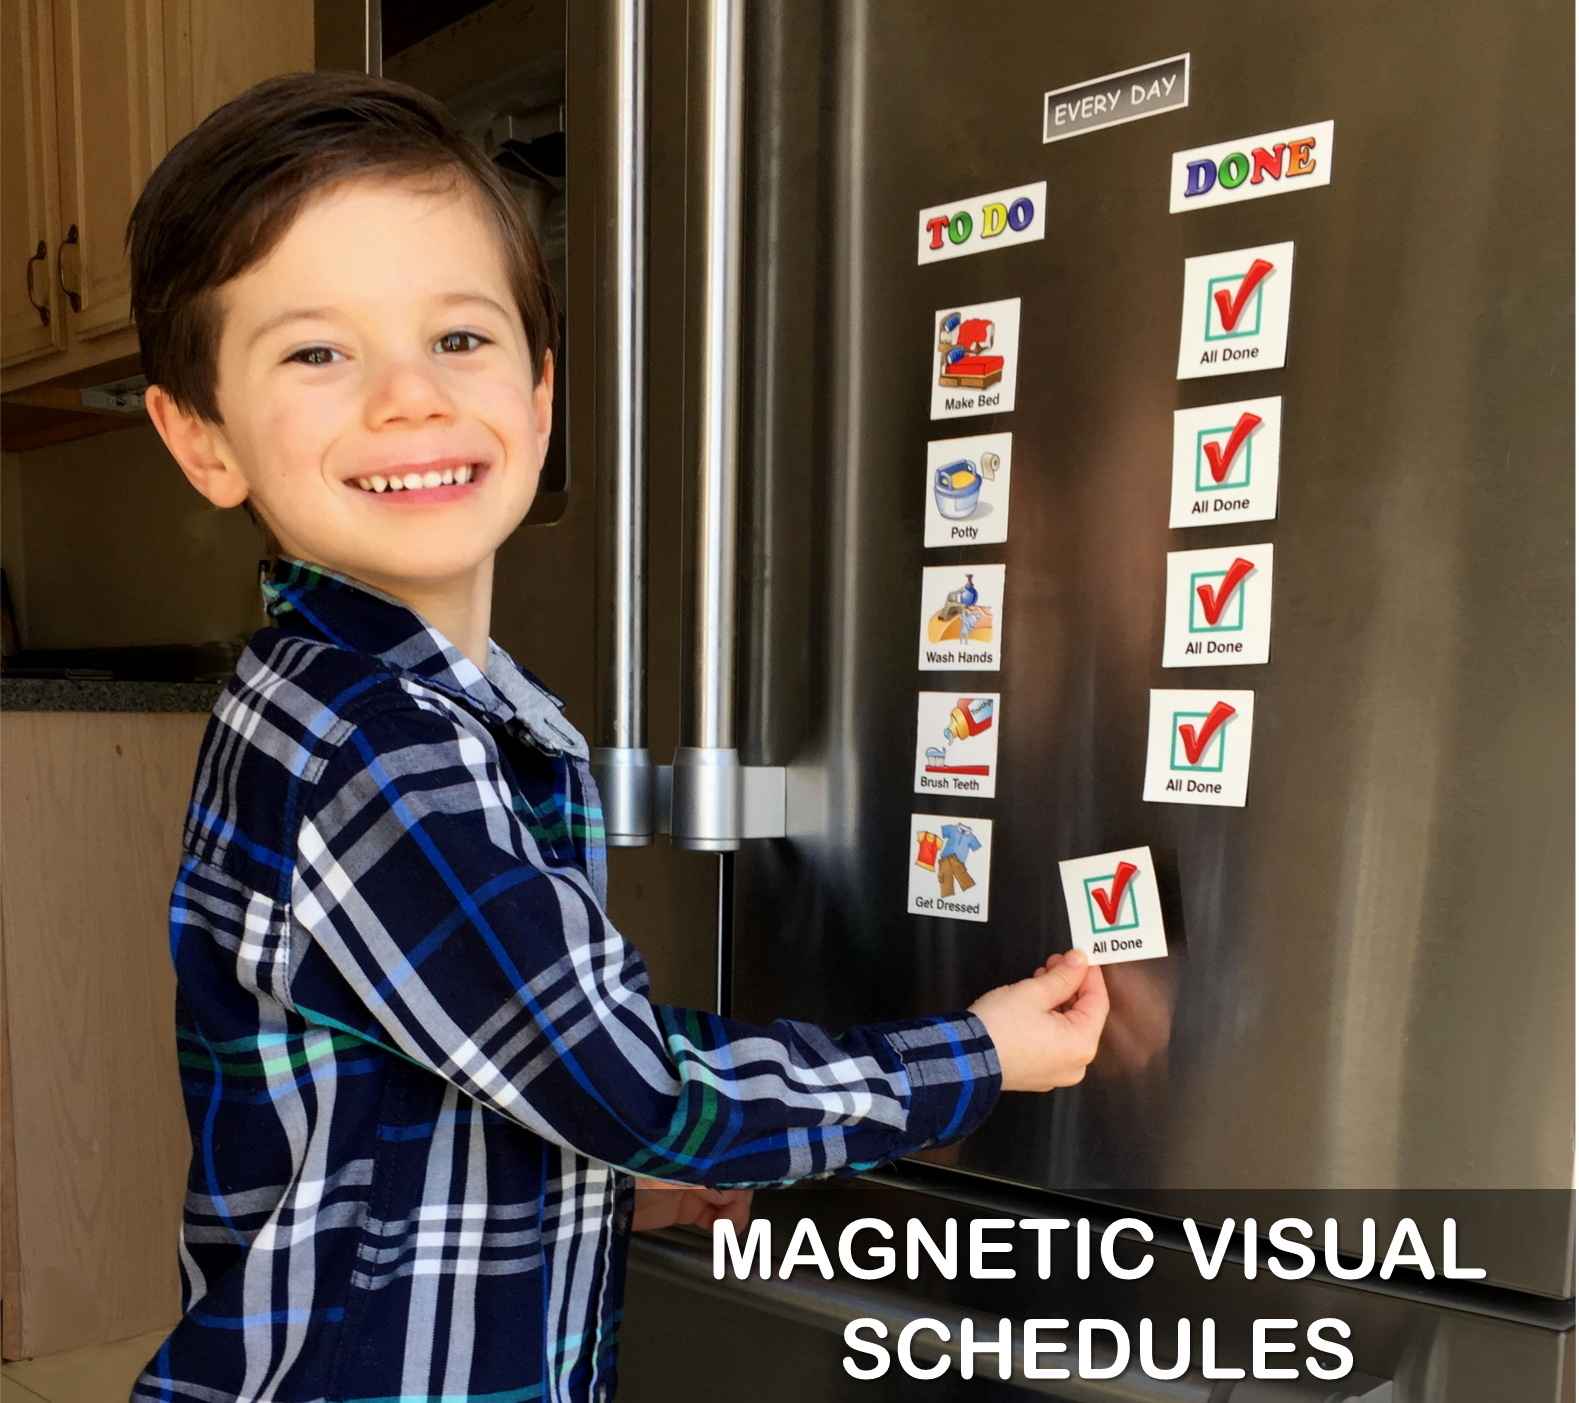 MAGNETIC VISUAL SCHEDULES